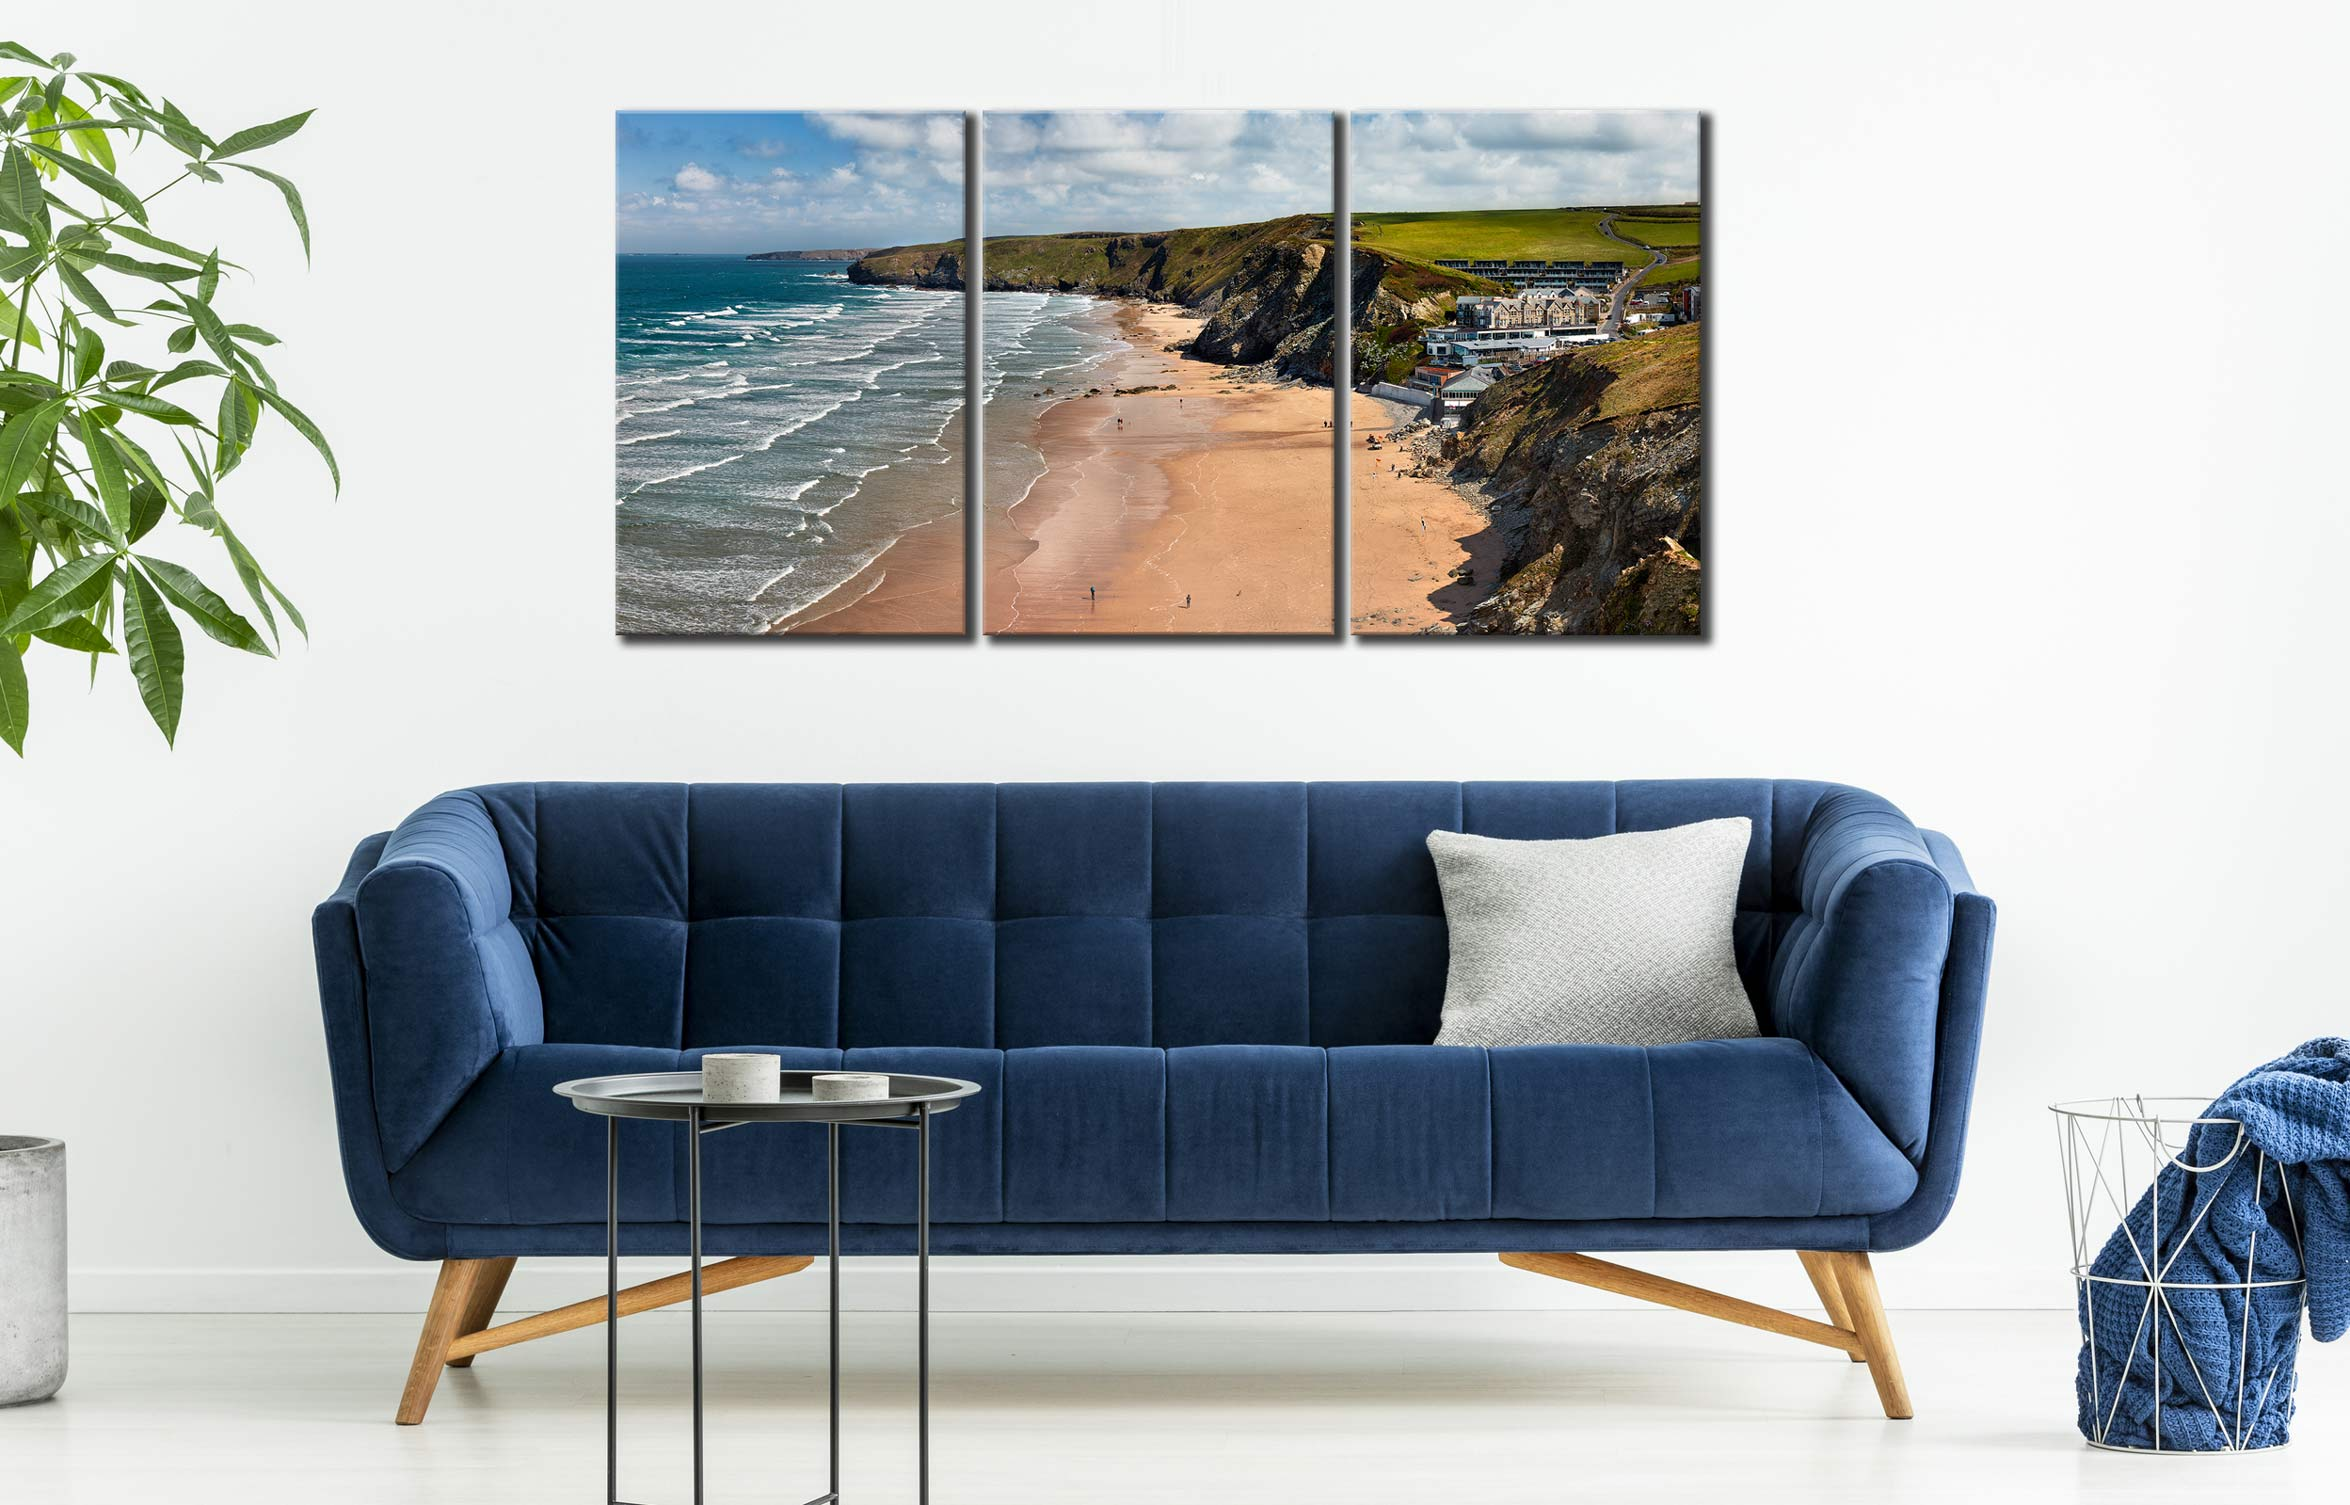 Watergate Bay Beach  - 3 Panel Canvas on Wall